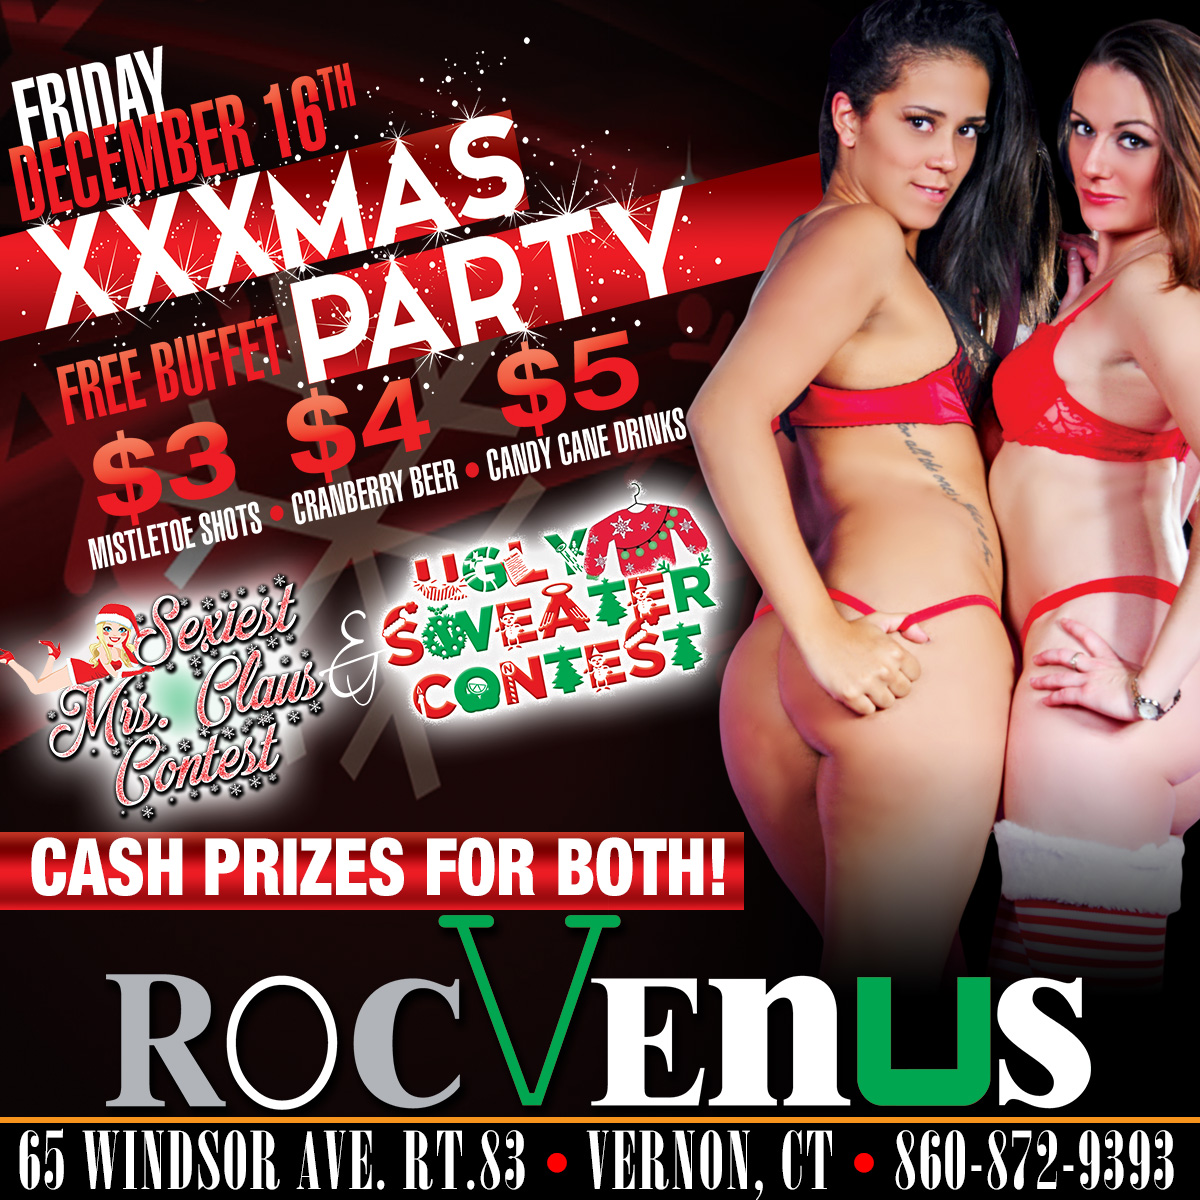 XXXMAS Party | RocVenus Strip Club Connecticut